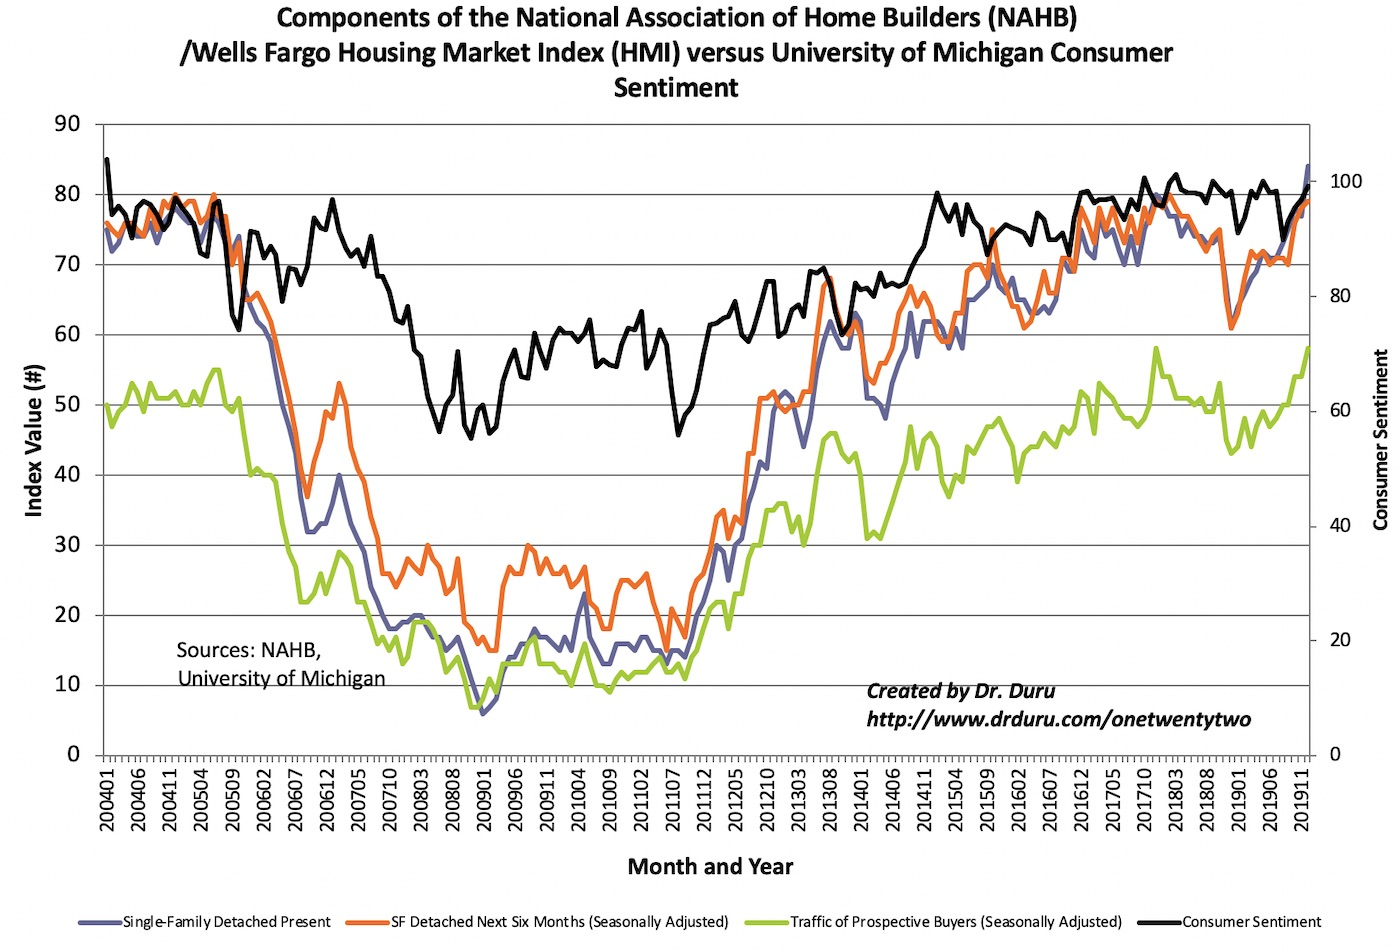 The components of the Housing Market Index (HMI) have soared along with the recovery in consumer sentiment.